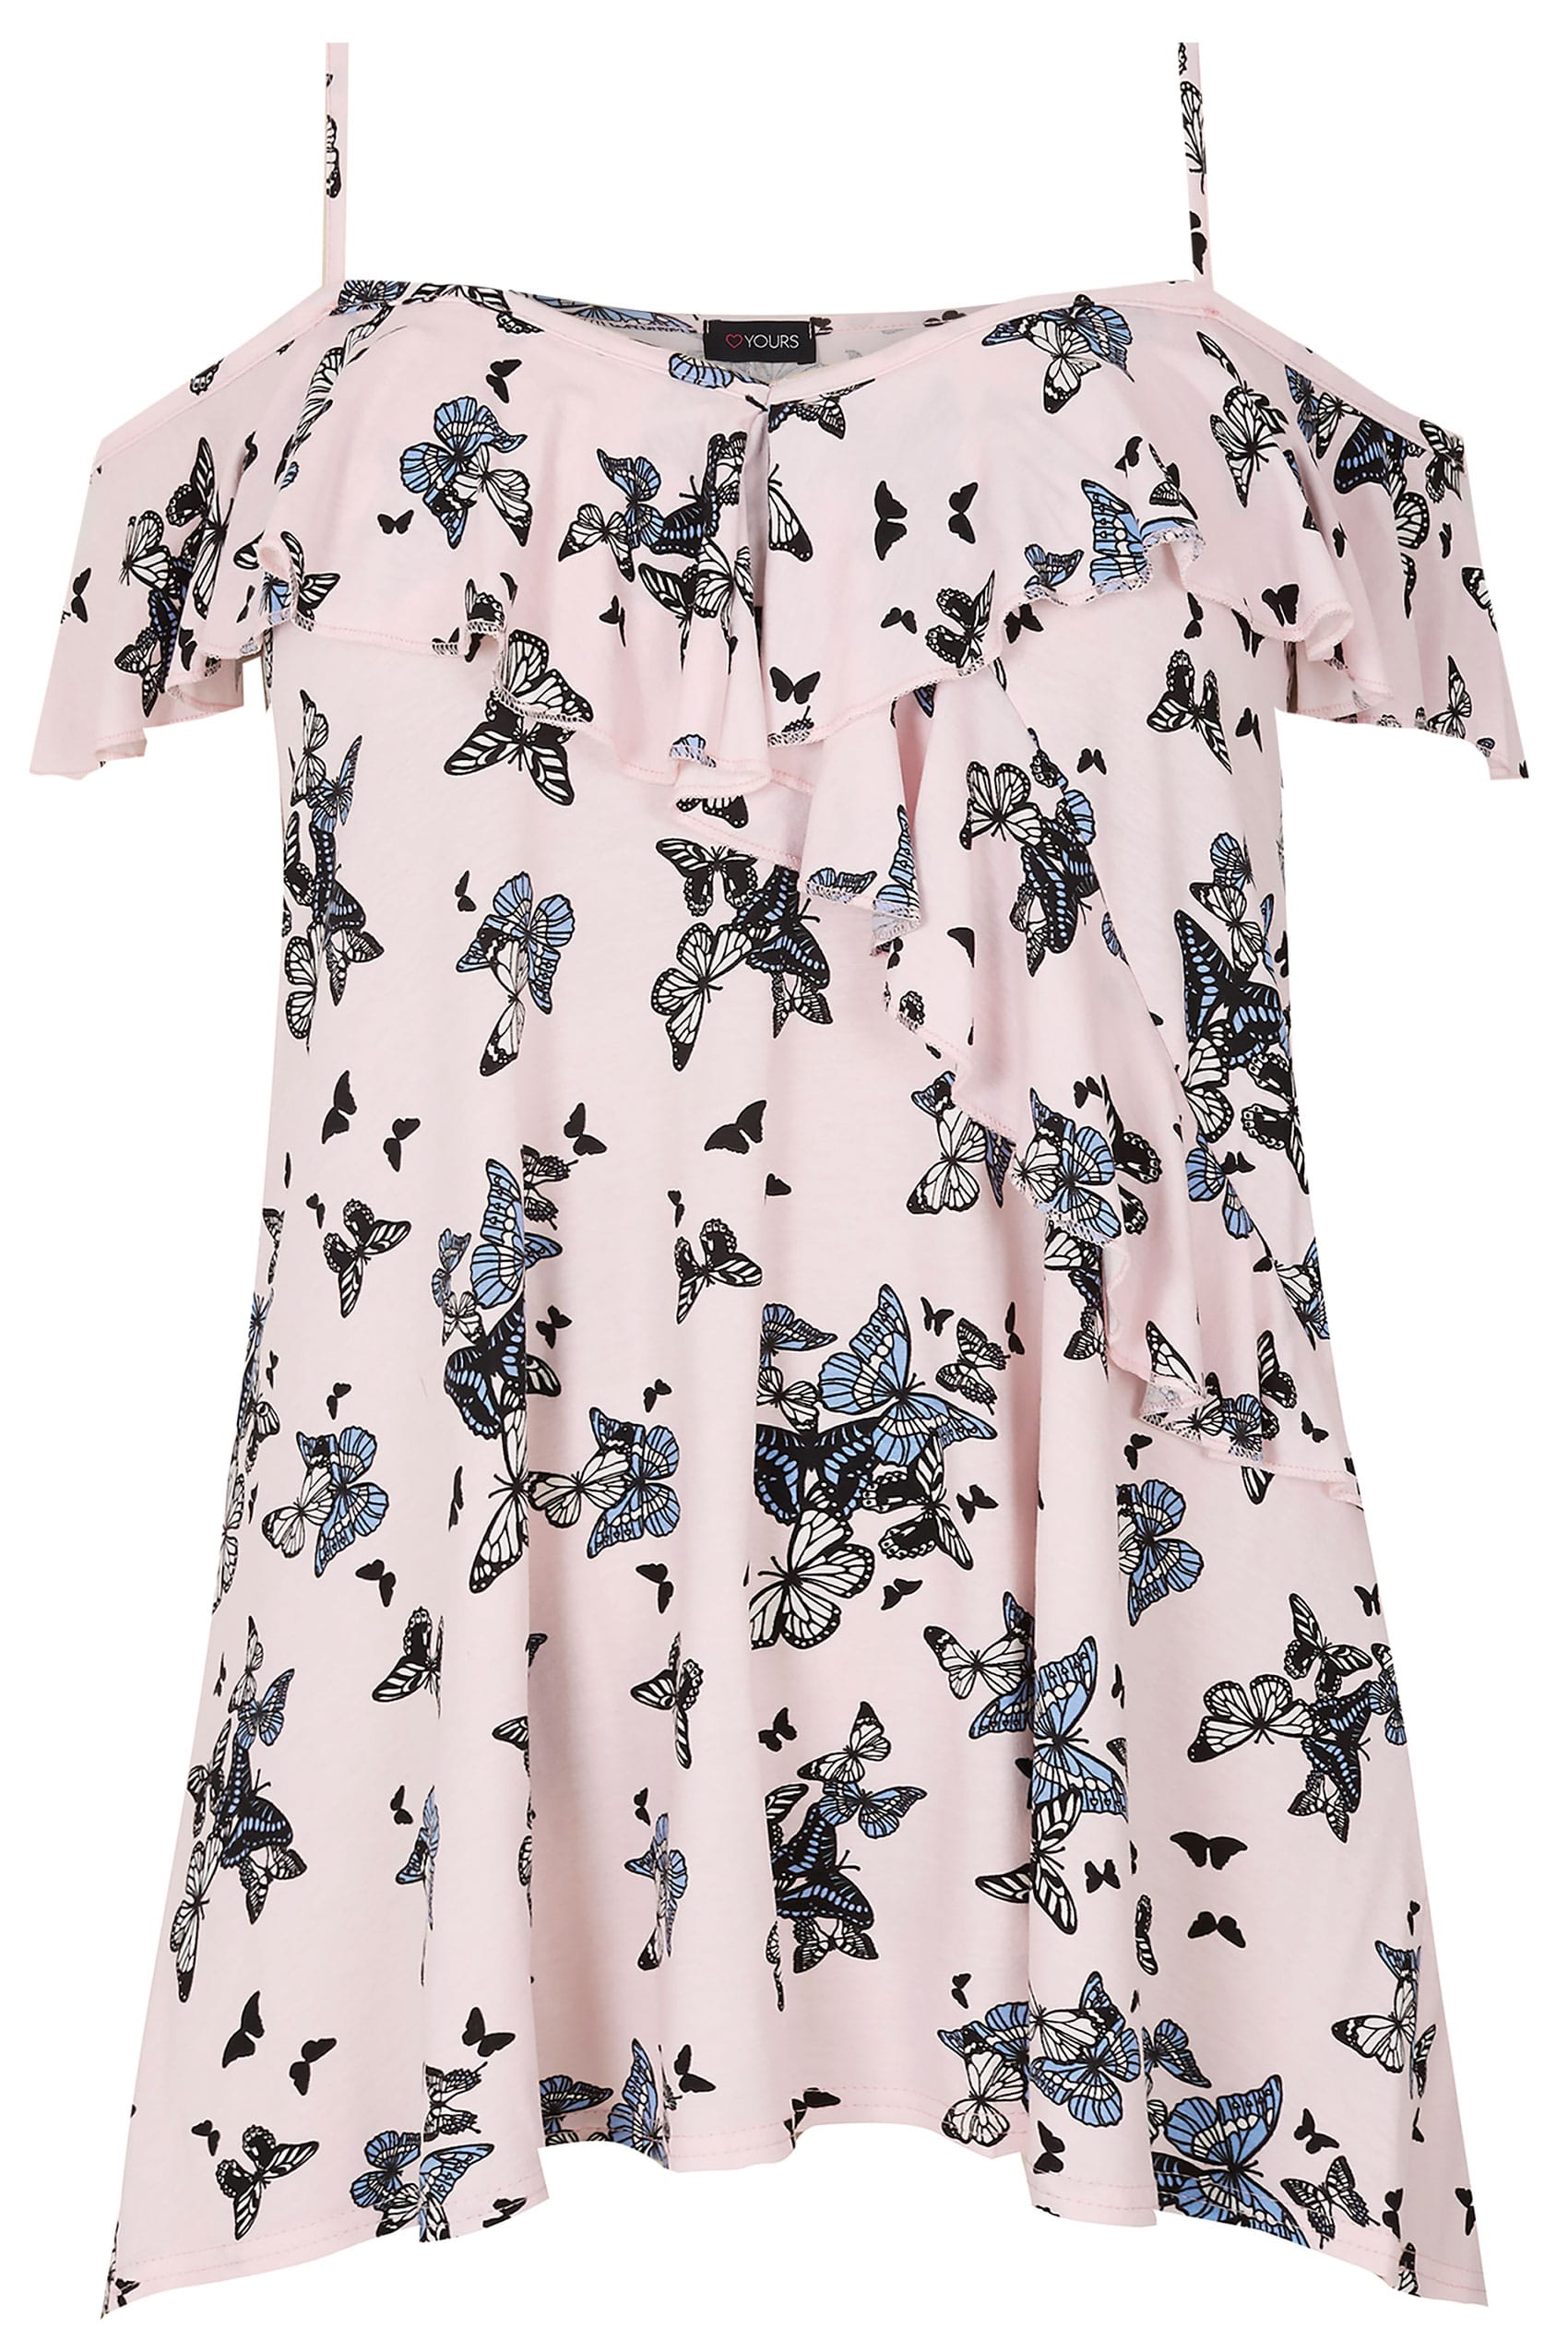 837c8497666075 Light Pink Butterfly Print Frill Cold Shoulder Top